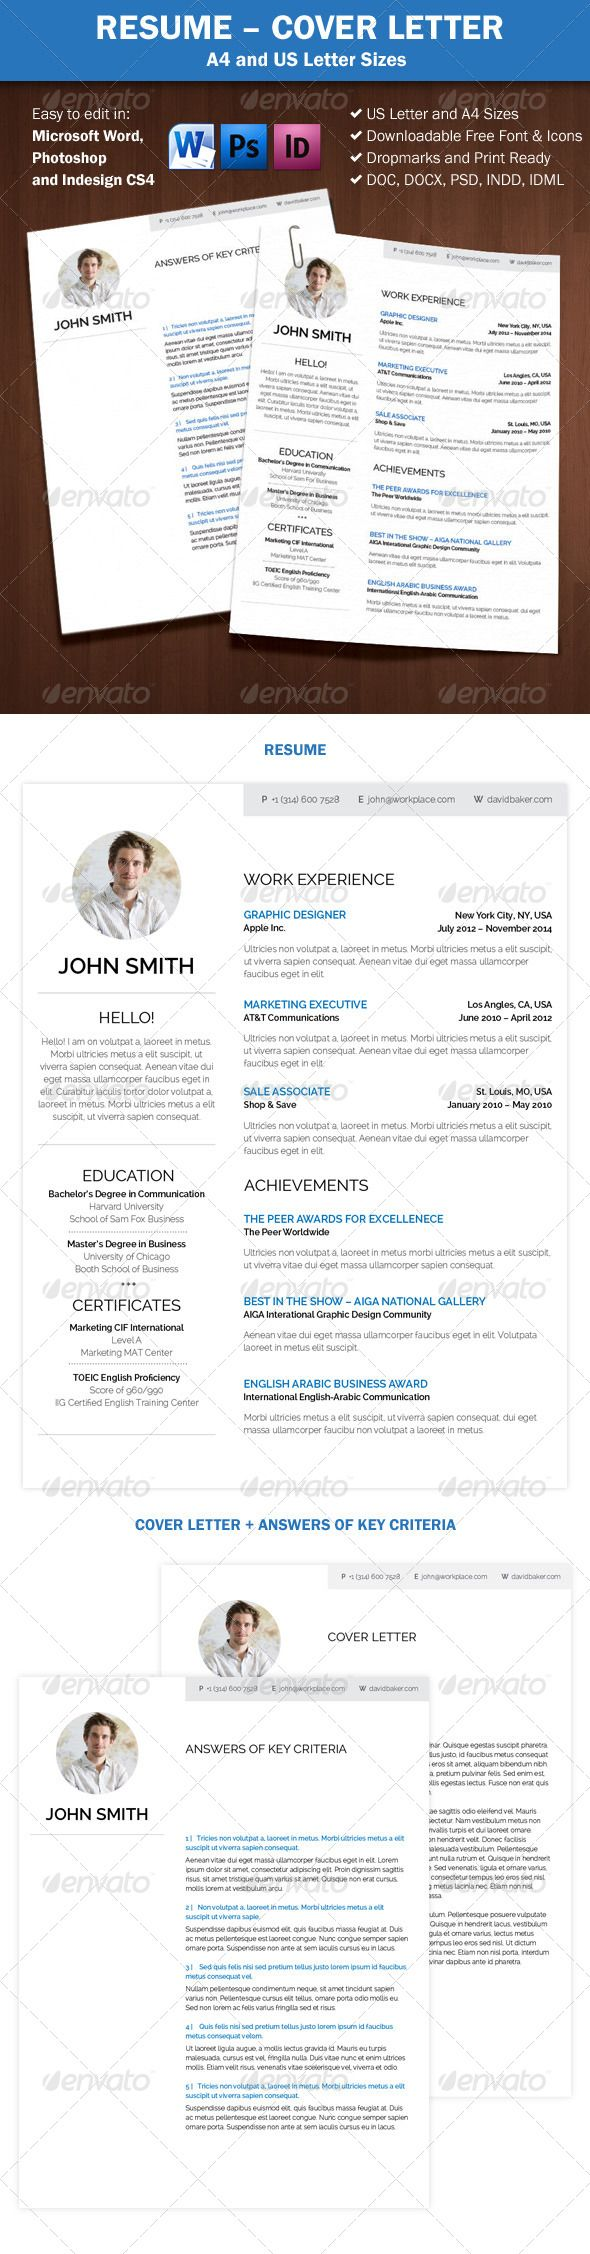 22 Best Curriculum Vitae Design Images On Pinterest Curriculum